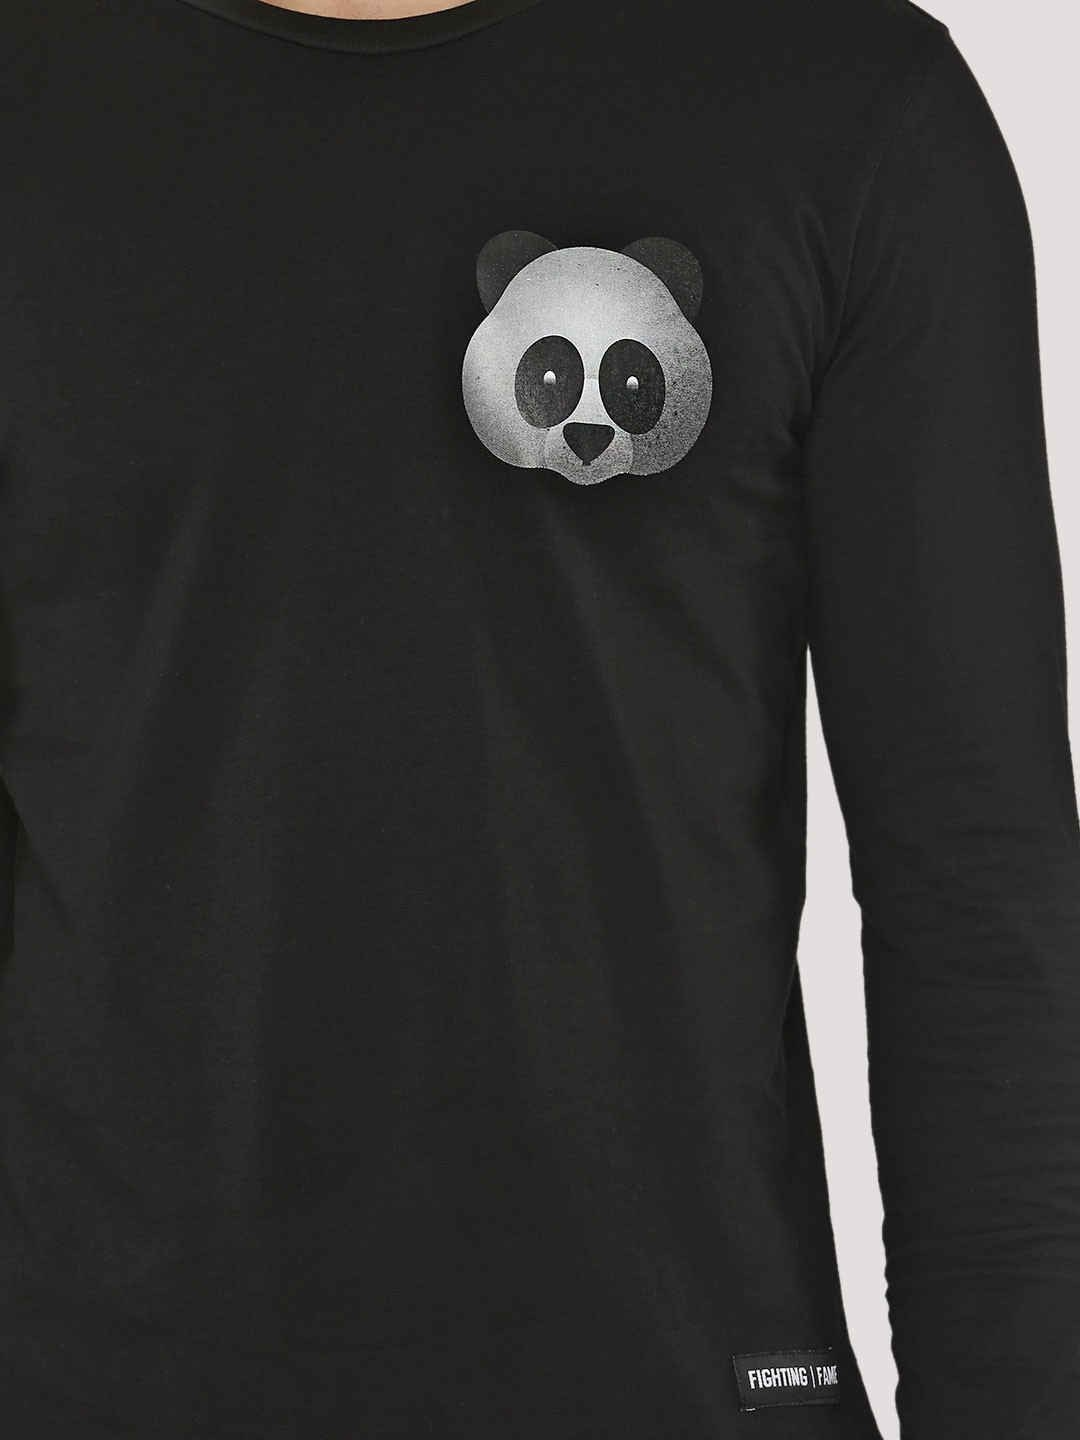 PANDA Long Sleeve Black T-Shirt - Fighting Fame  - 2